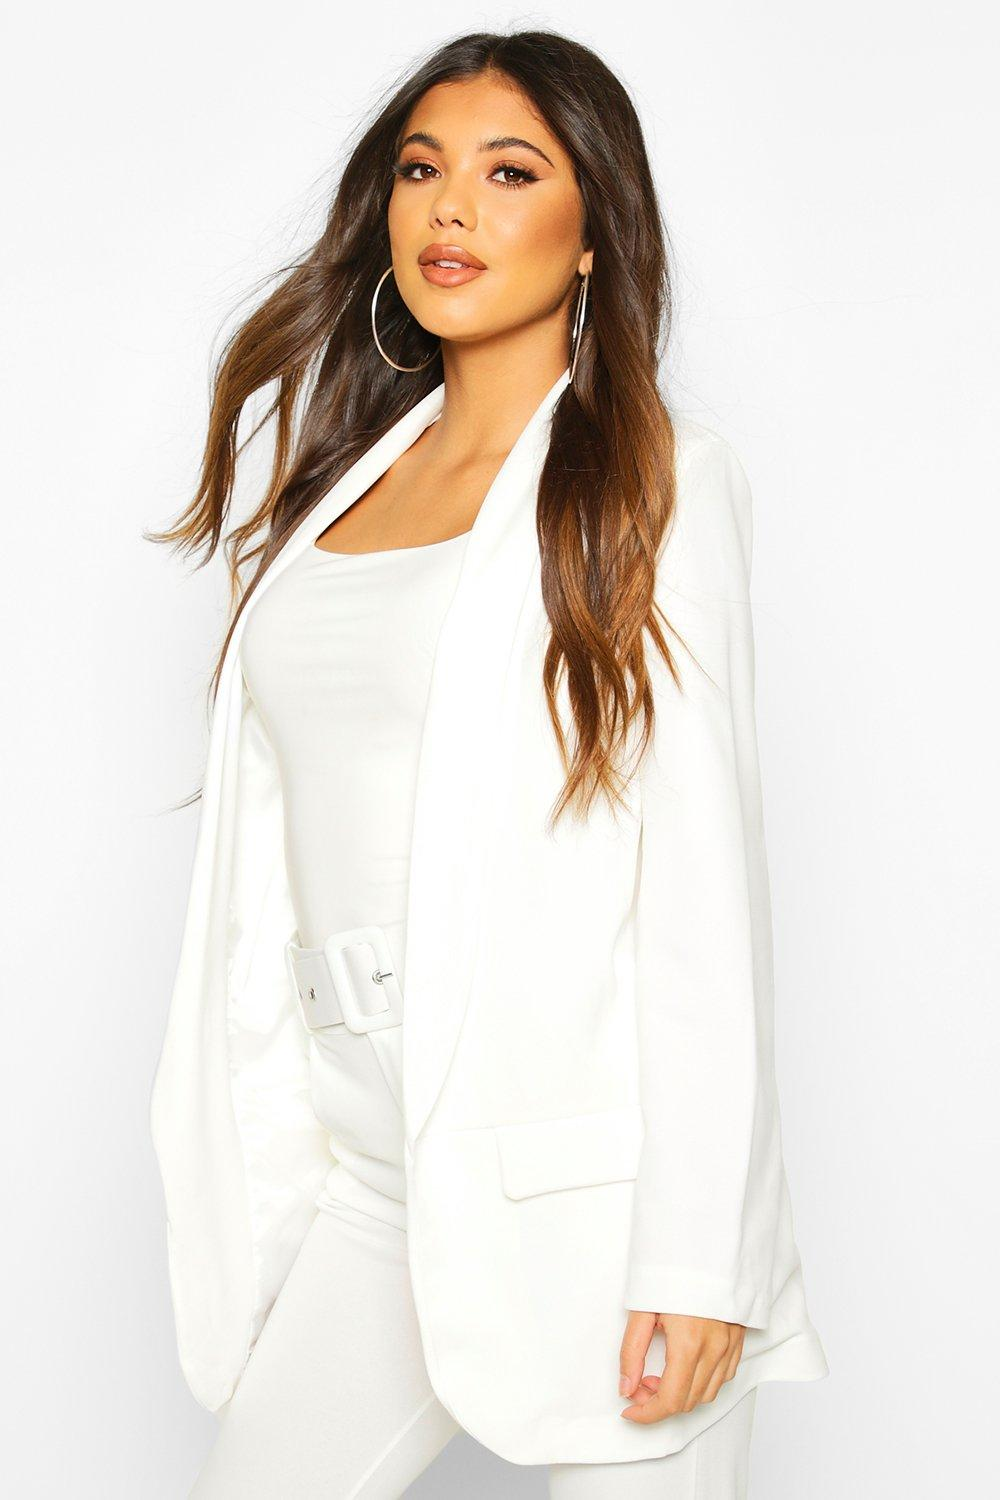 Costumes   Tailleurs femme   boohoo FR